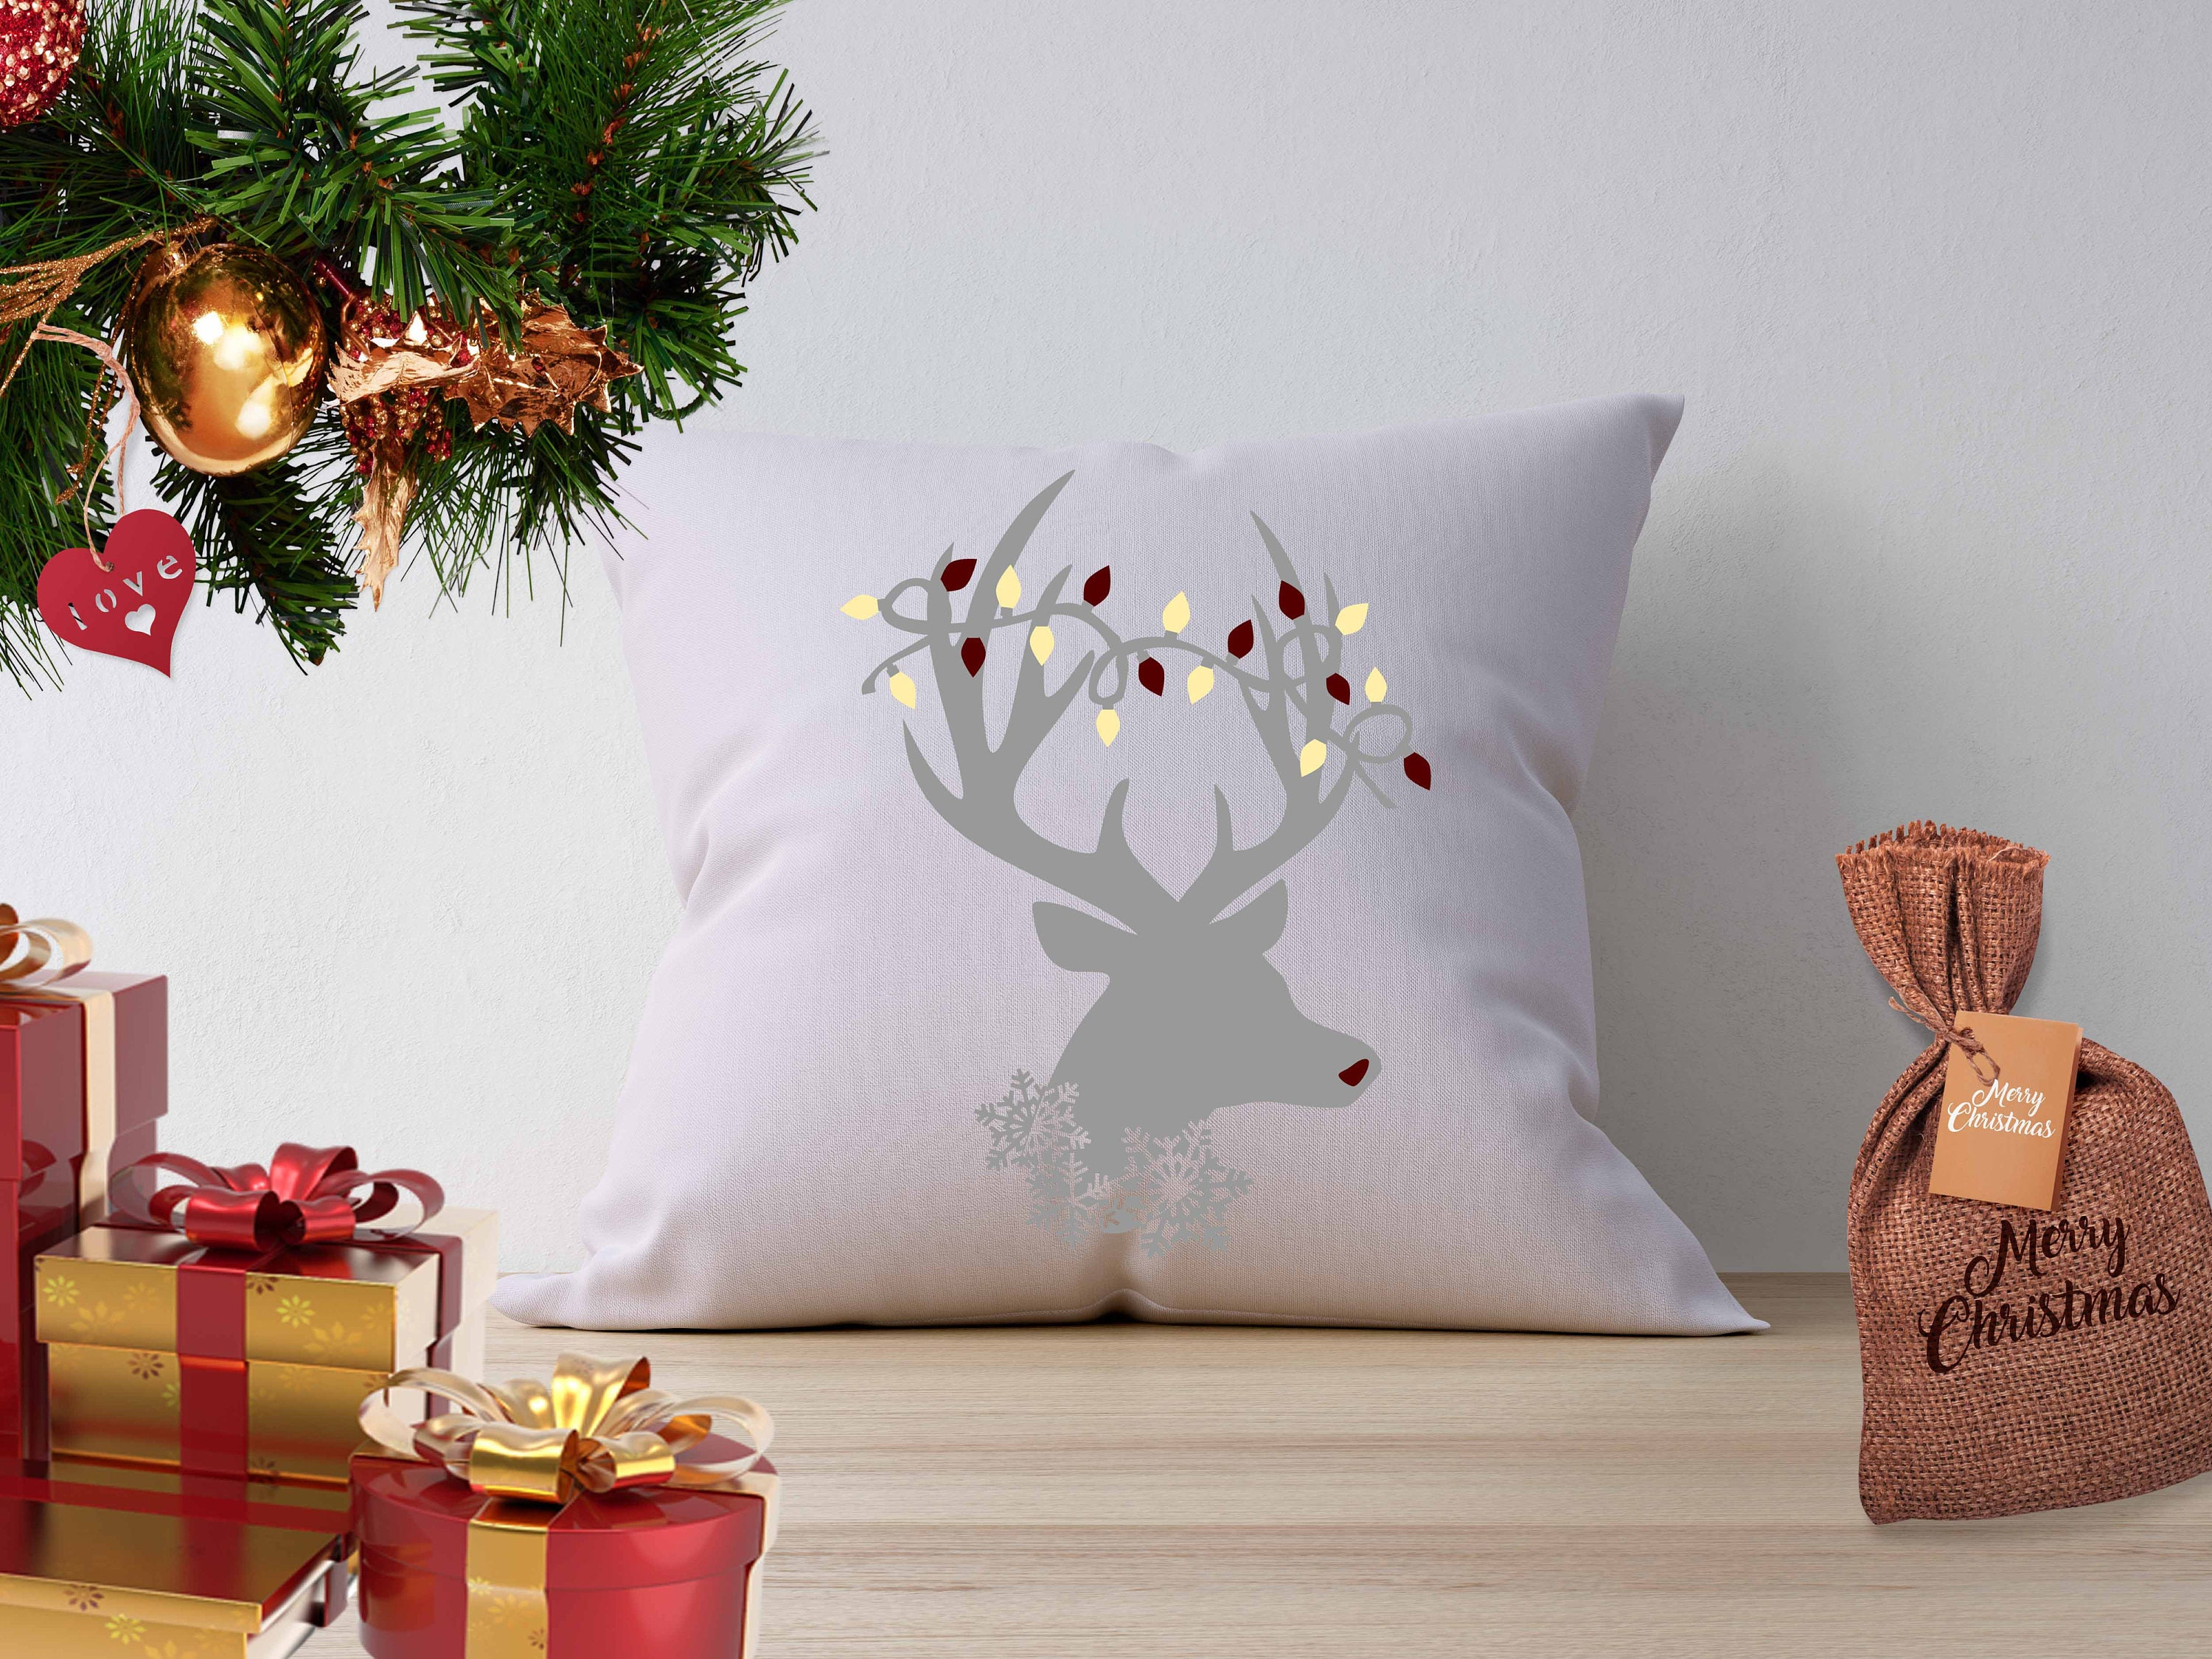 Christmas Svg Reindeer Svg Antlers Lights Snowflake Holidays Merry Svg Eps Dxf Png Silhouette Cricut Clip Art Graphics Vinyl